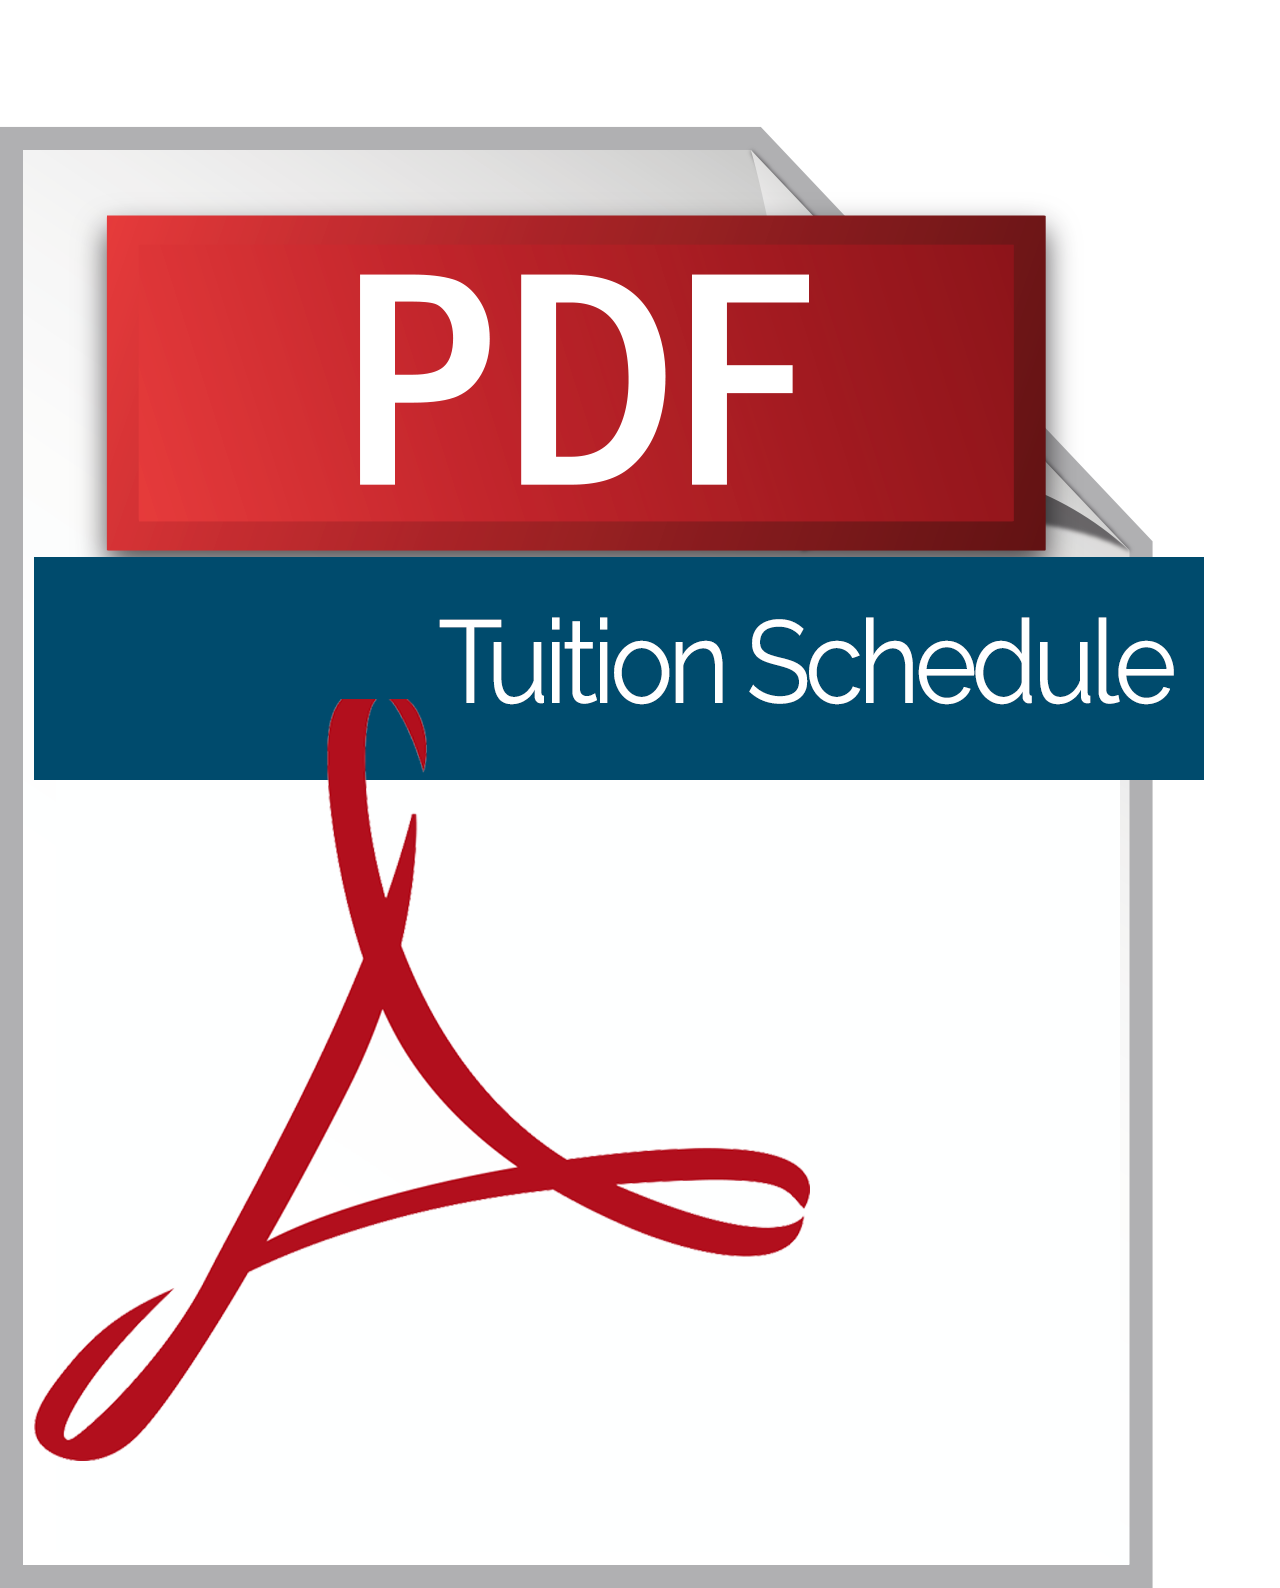 2017-2018 Tuition Schedule